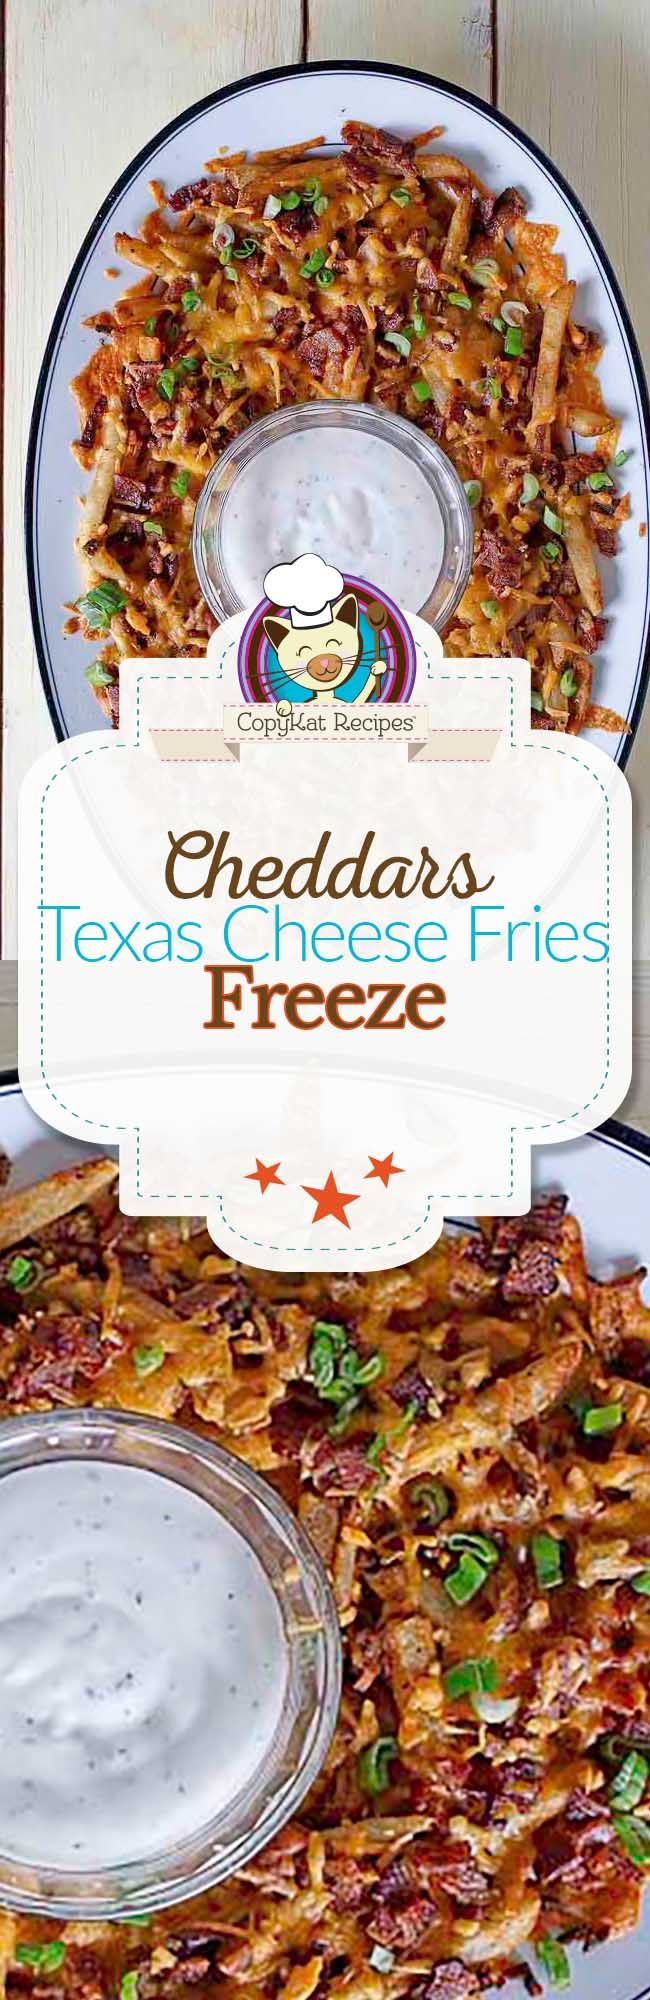 Make your own copycat Cheddar's Texas Cheese Fries at home with this copycat recipe. French Fries are topped with lots of cheese and bacon.